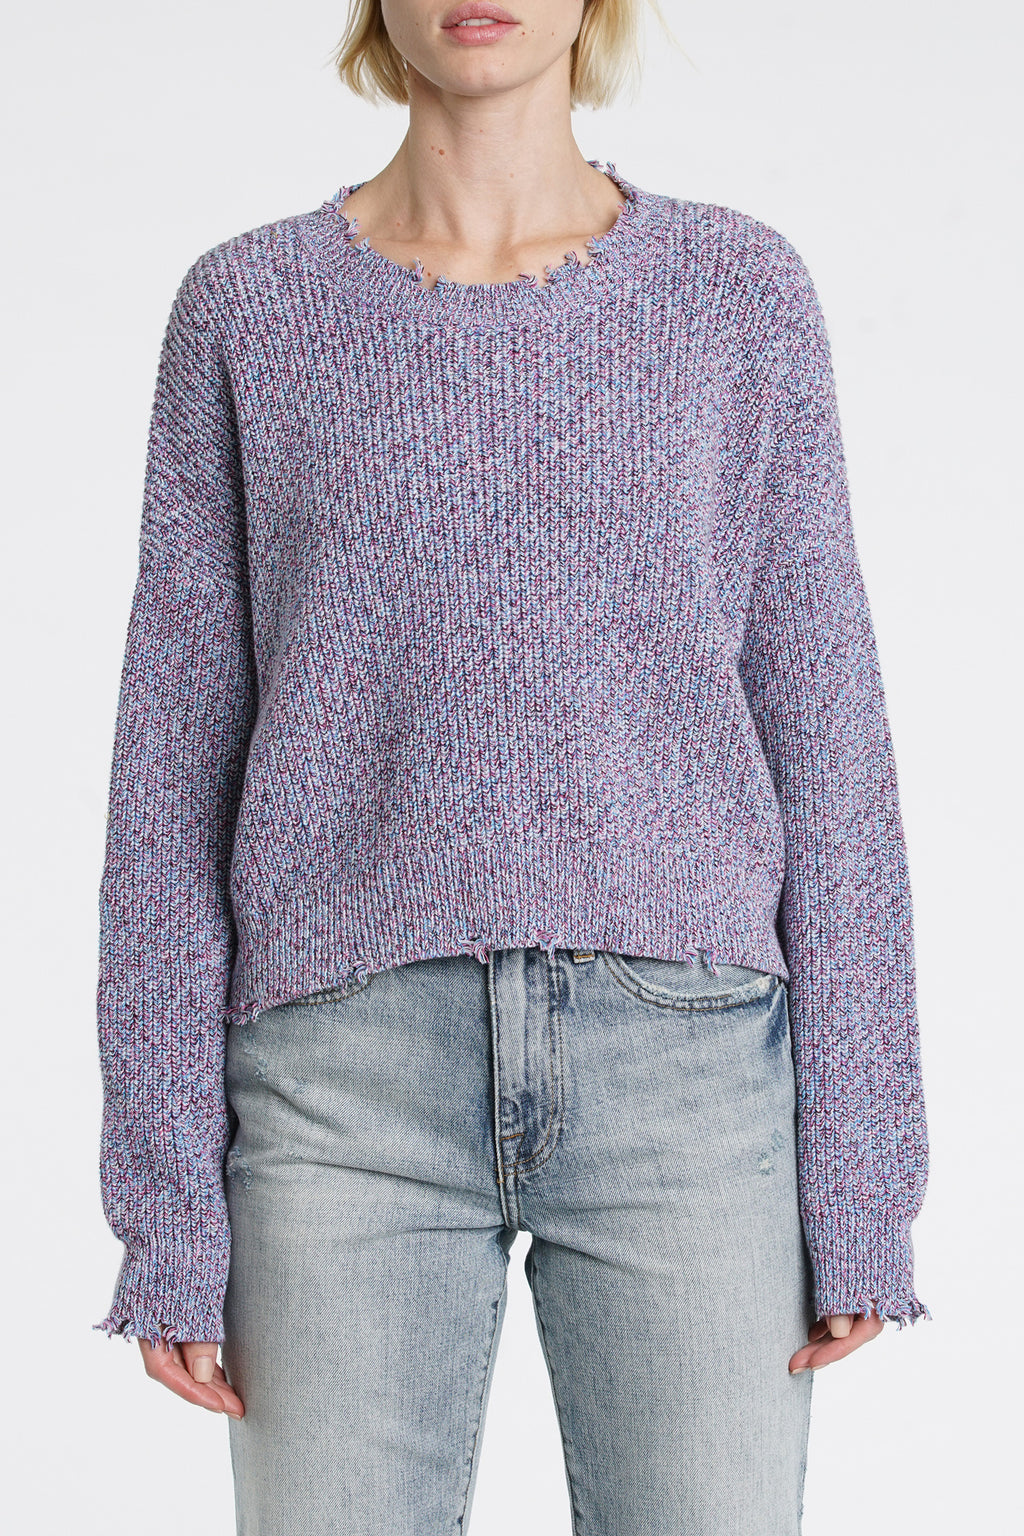 Eva Marbled Crop Sweater - Heart Breaker